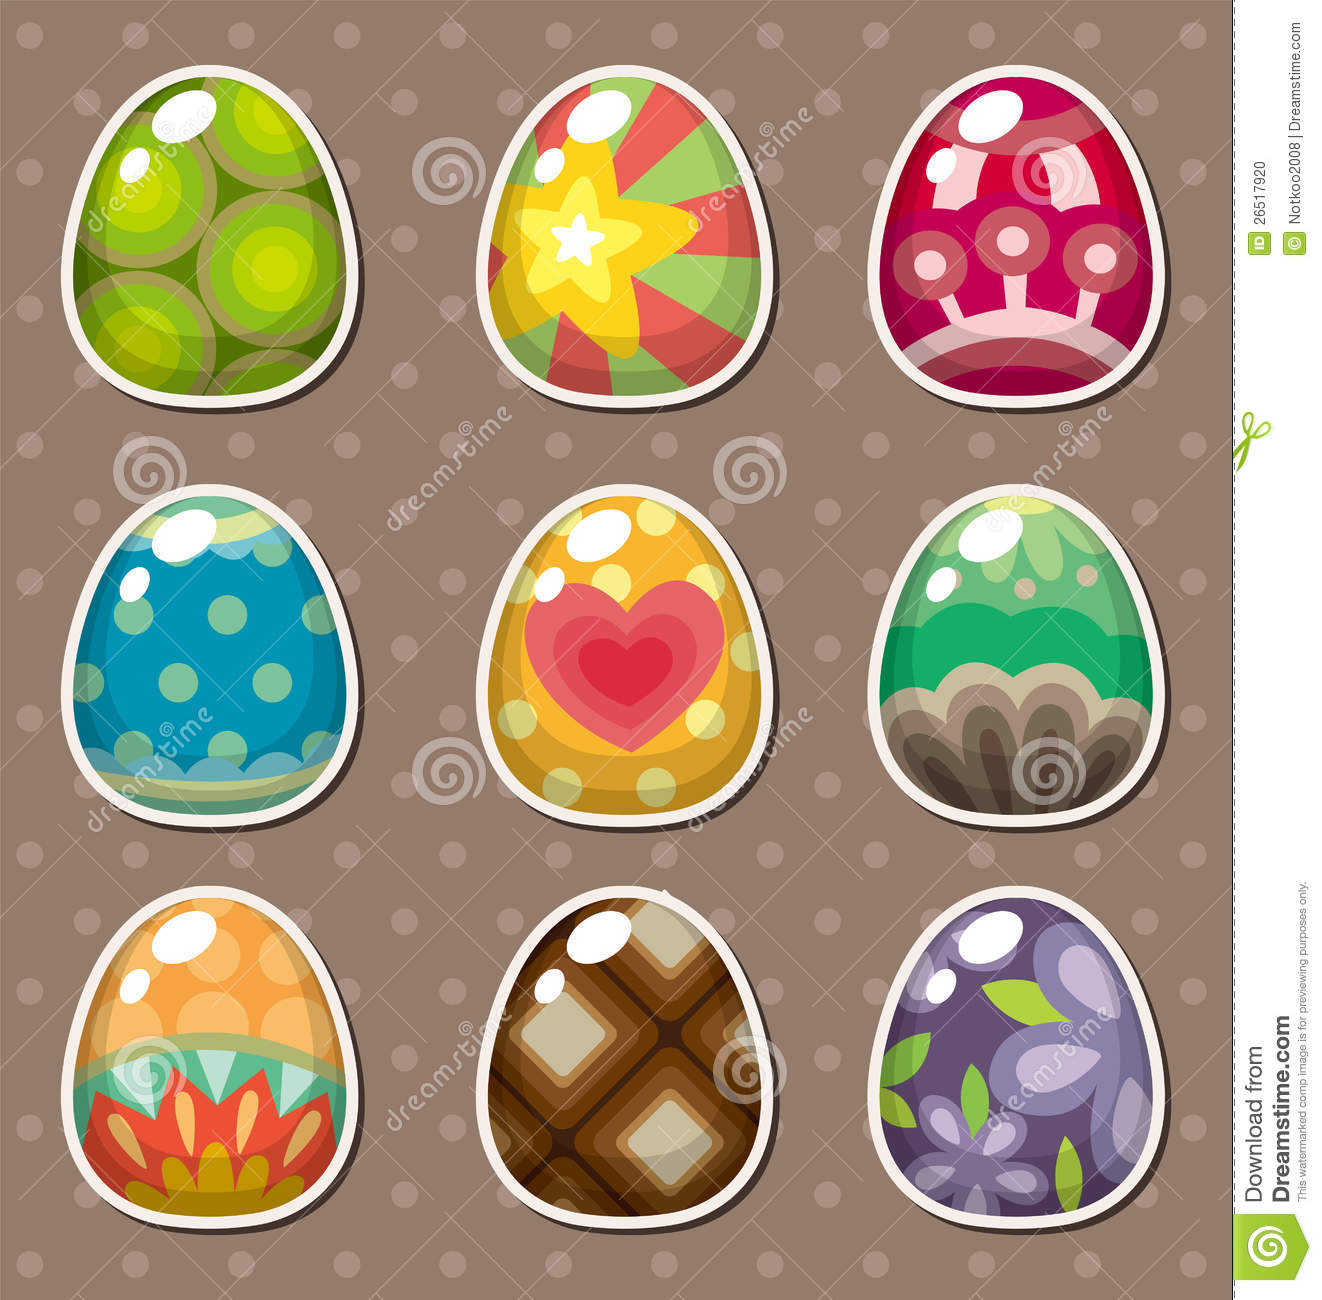 Easter Stickers Stock Vector - Image: 49425594